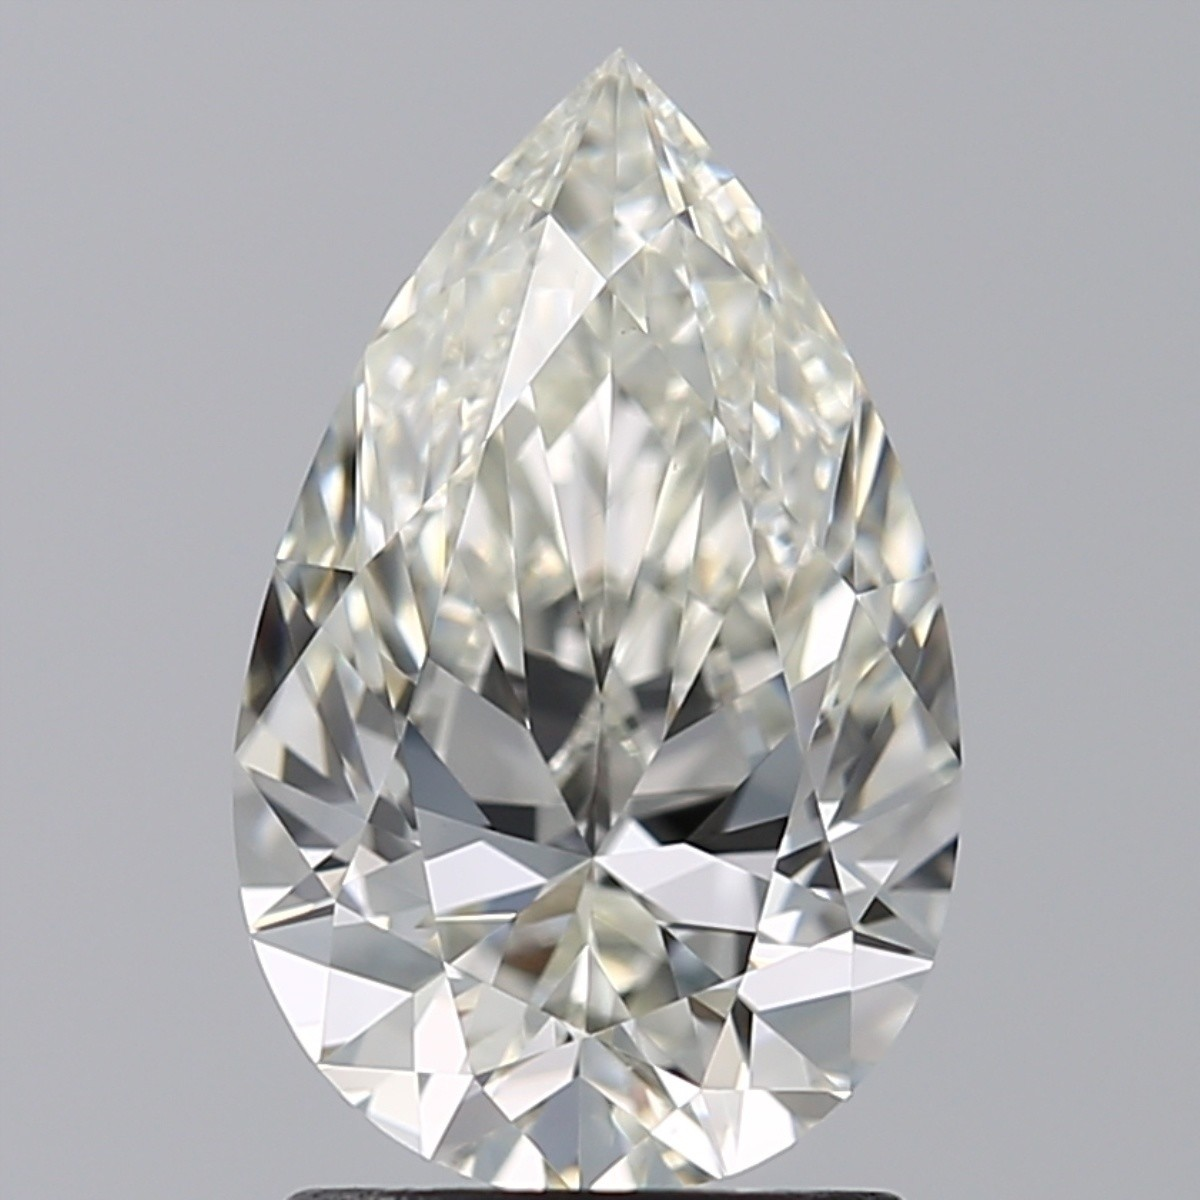 1.54 Carat Pear Diamond (J/VVS2)